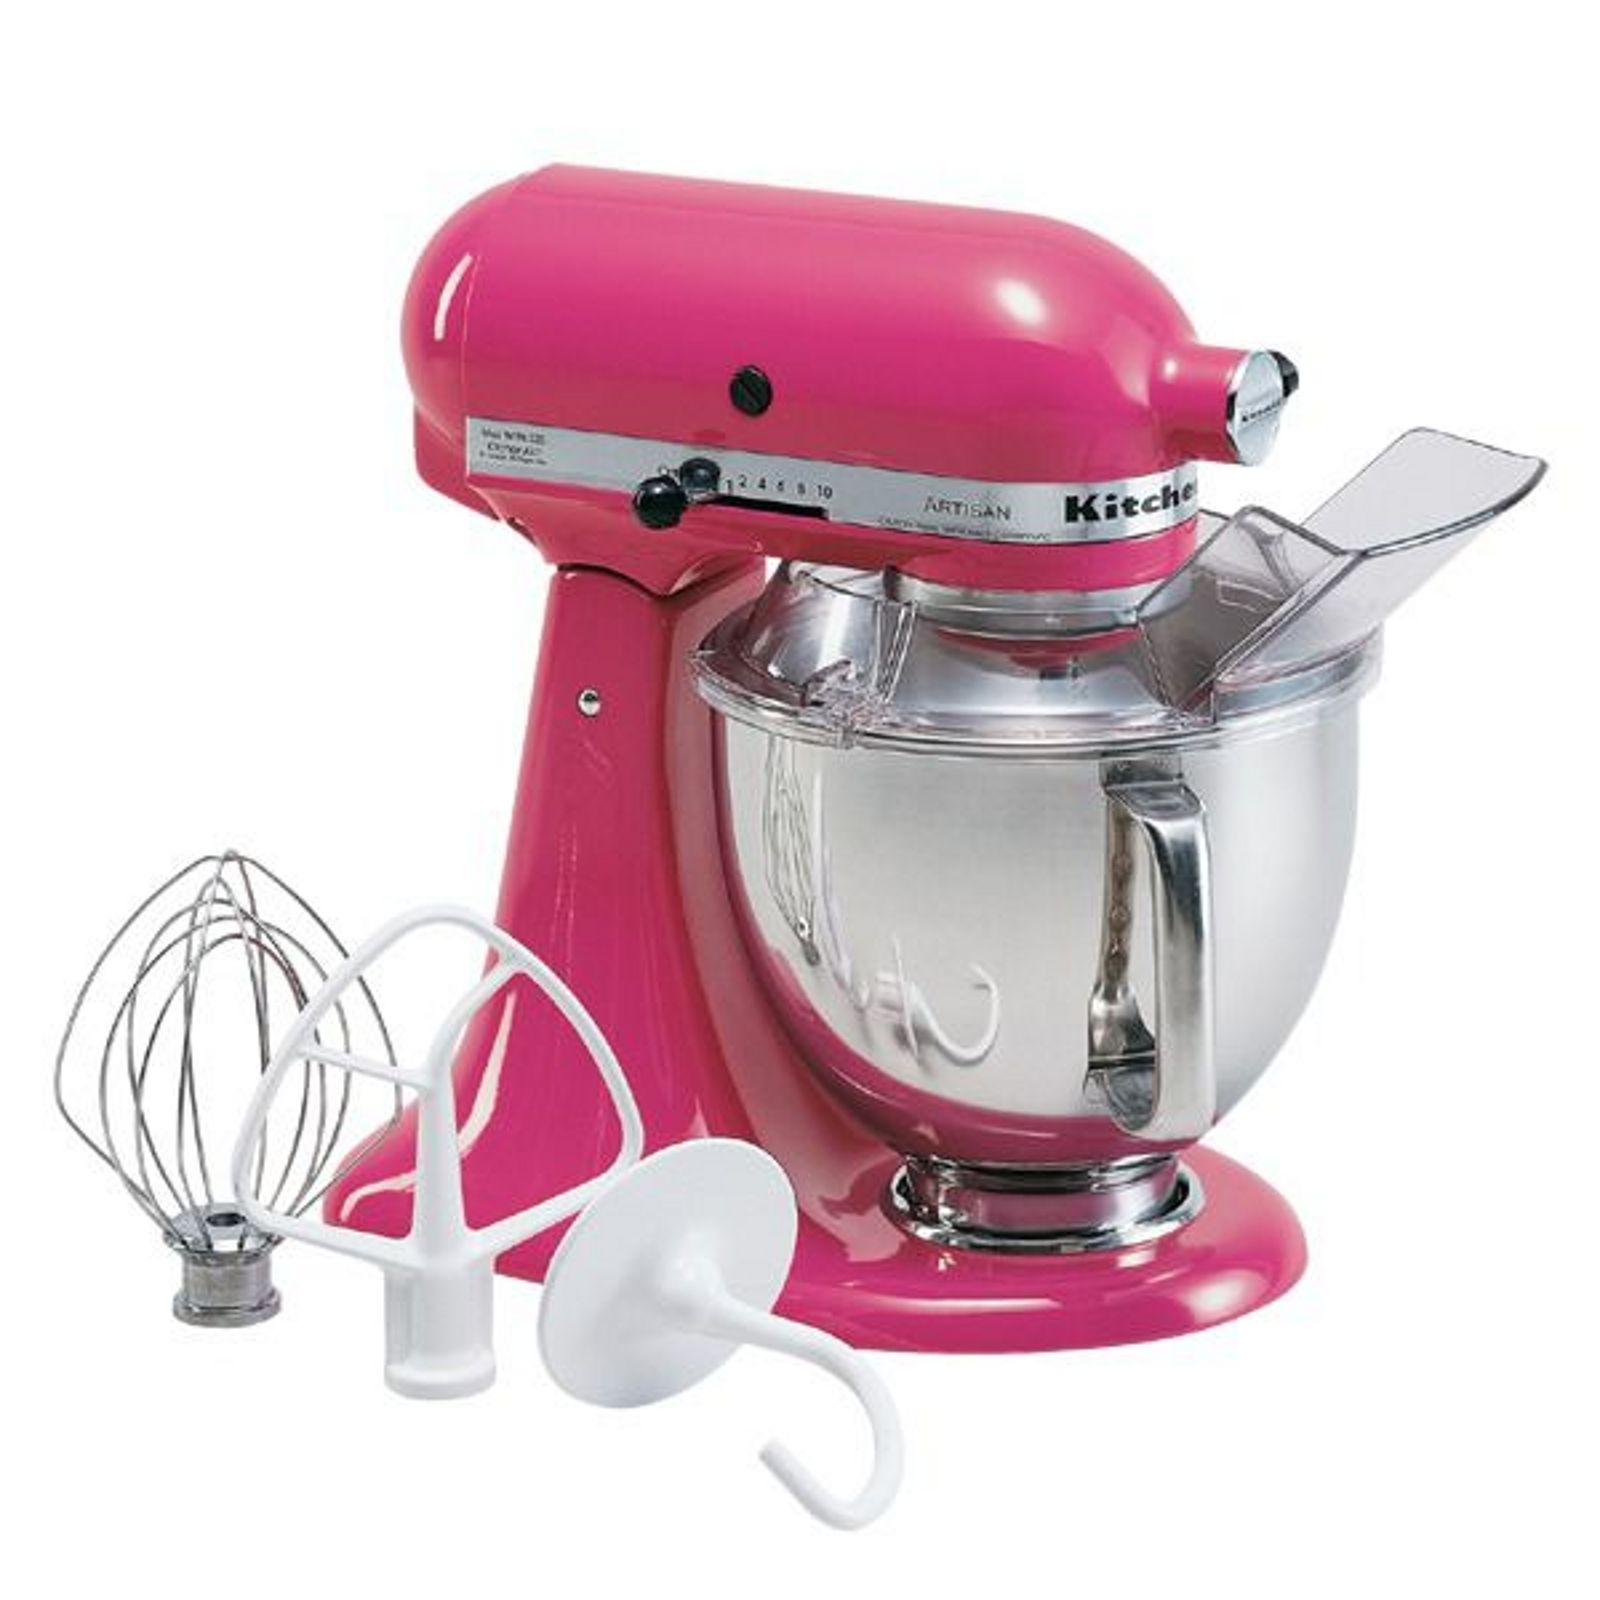 bed bath and beyond kitchenaid mixer cover